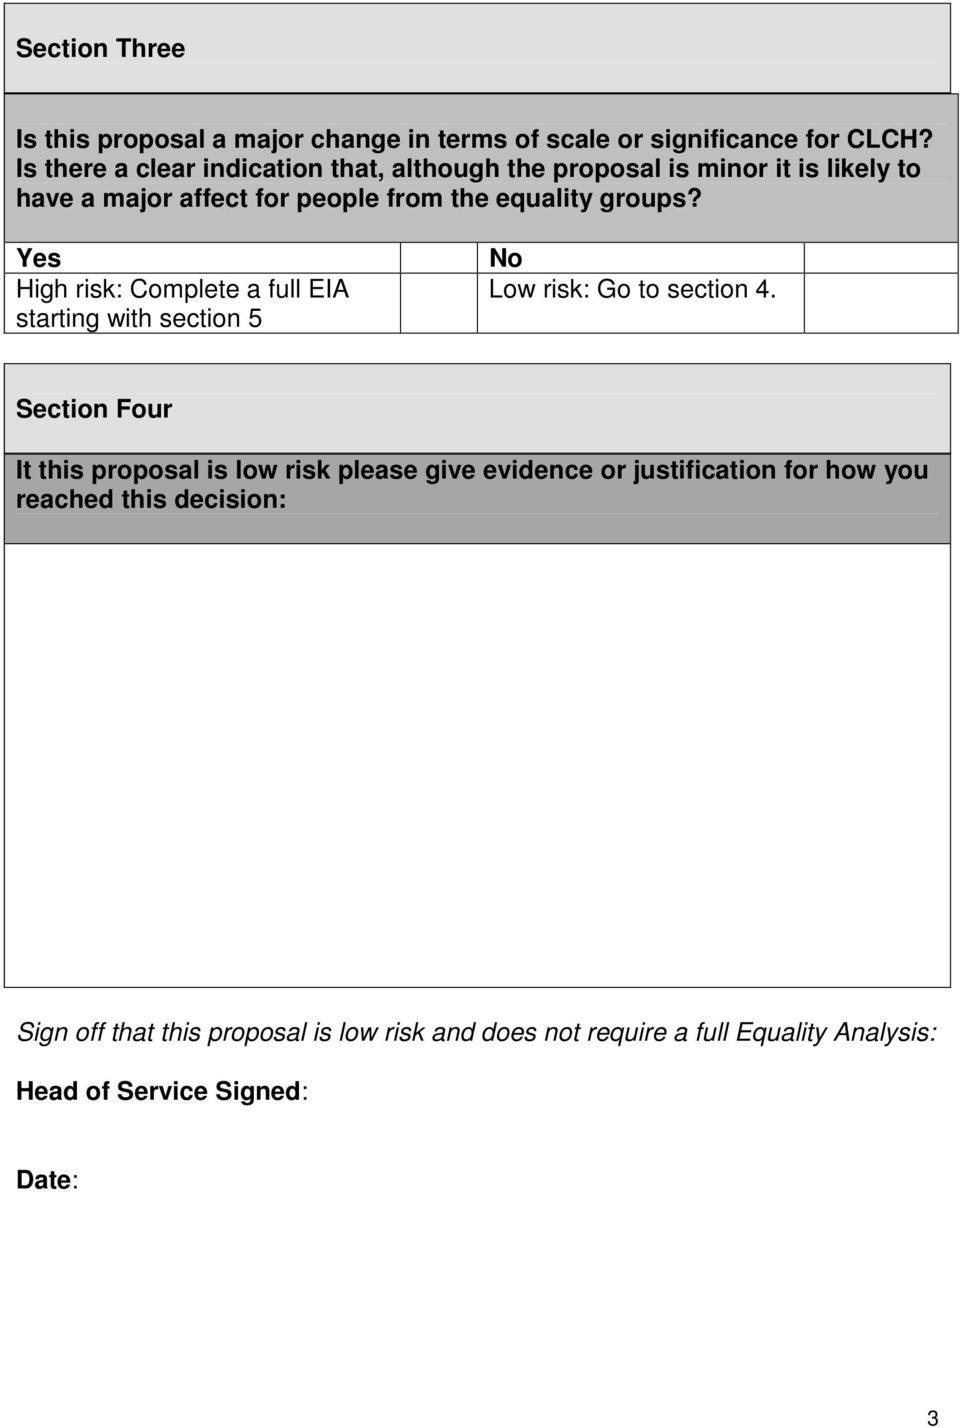 Yes High risk: Complete a full EIA starting with section 5 No Low risk: Go to section 4.